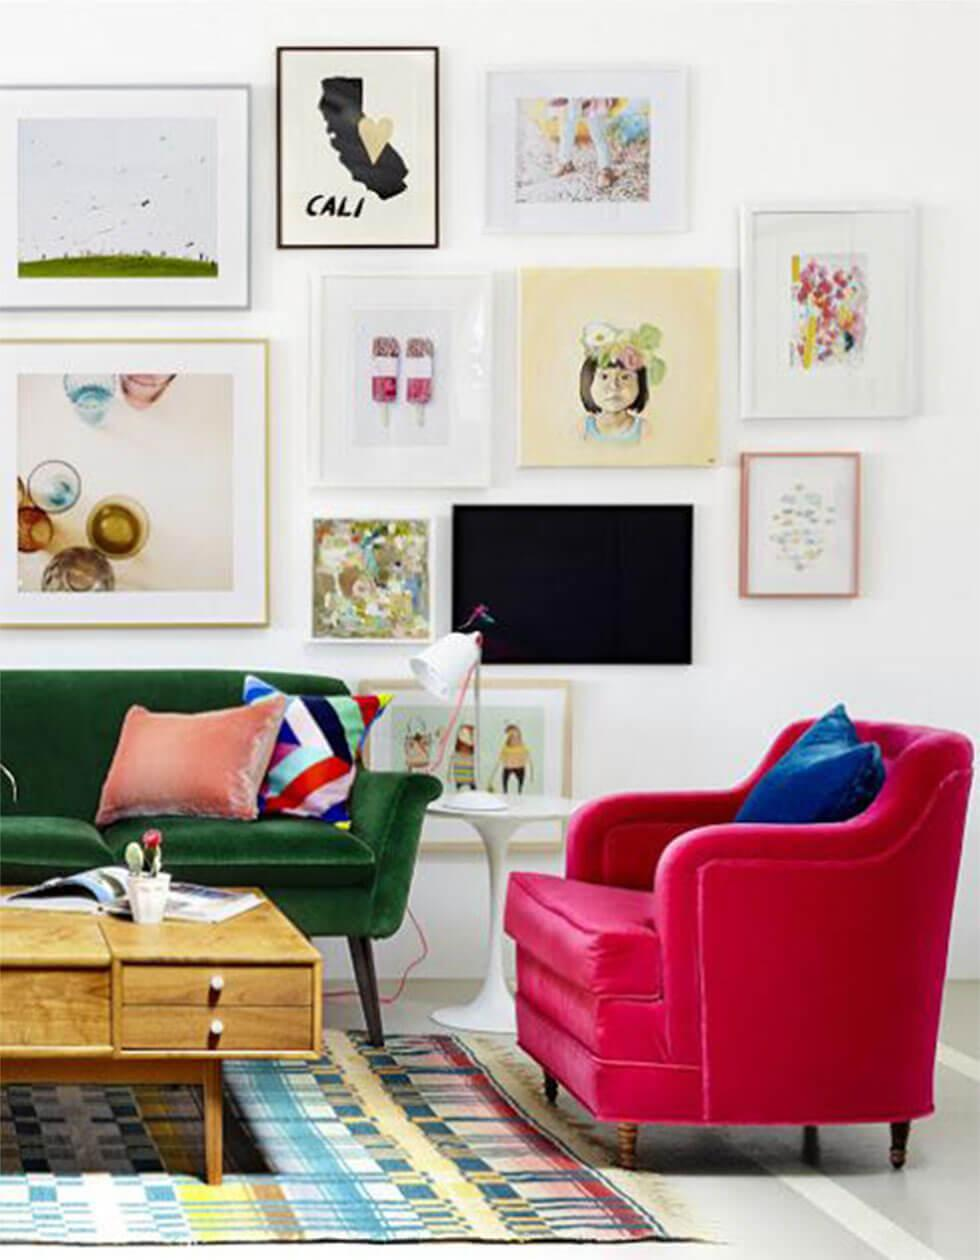 White living room with framed artwork and posters